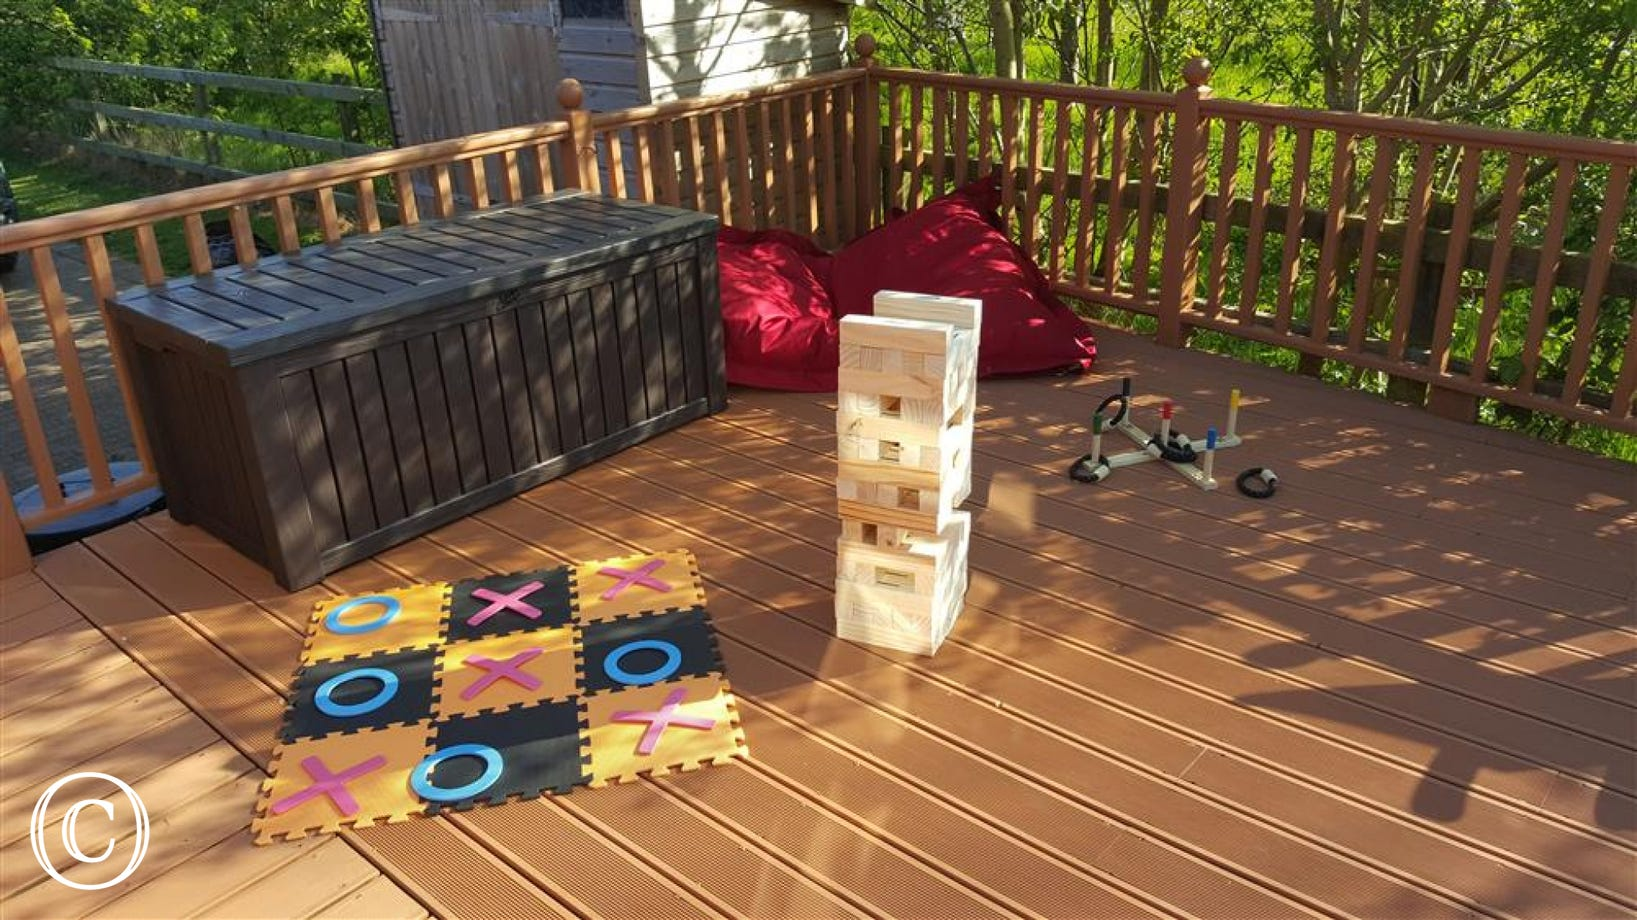 External decking with garden games